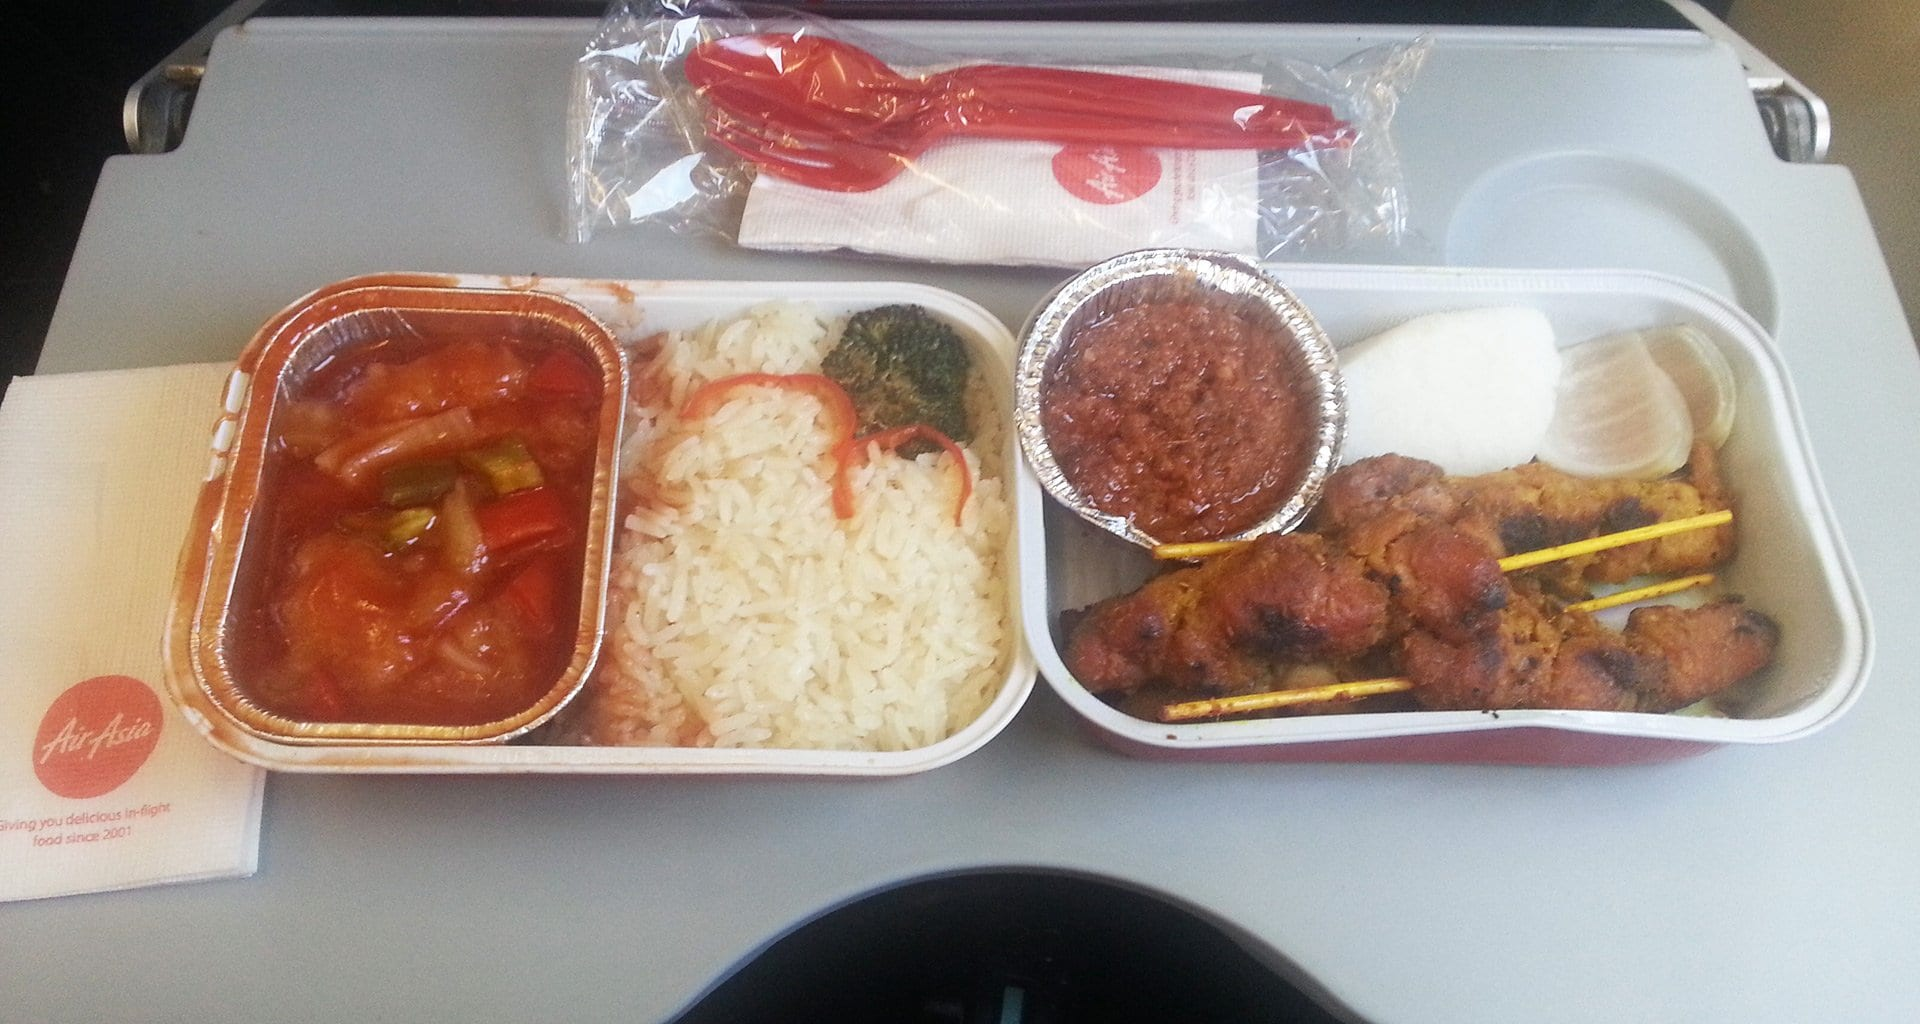 Air Asia meal tray with two hot meals. Chicken stay and sweet and sour fish with rice